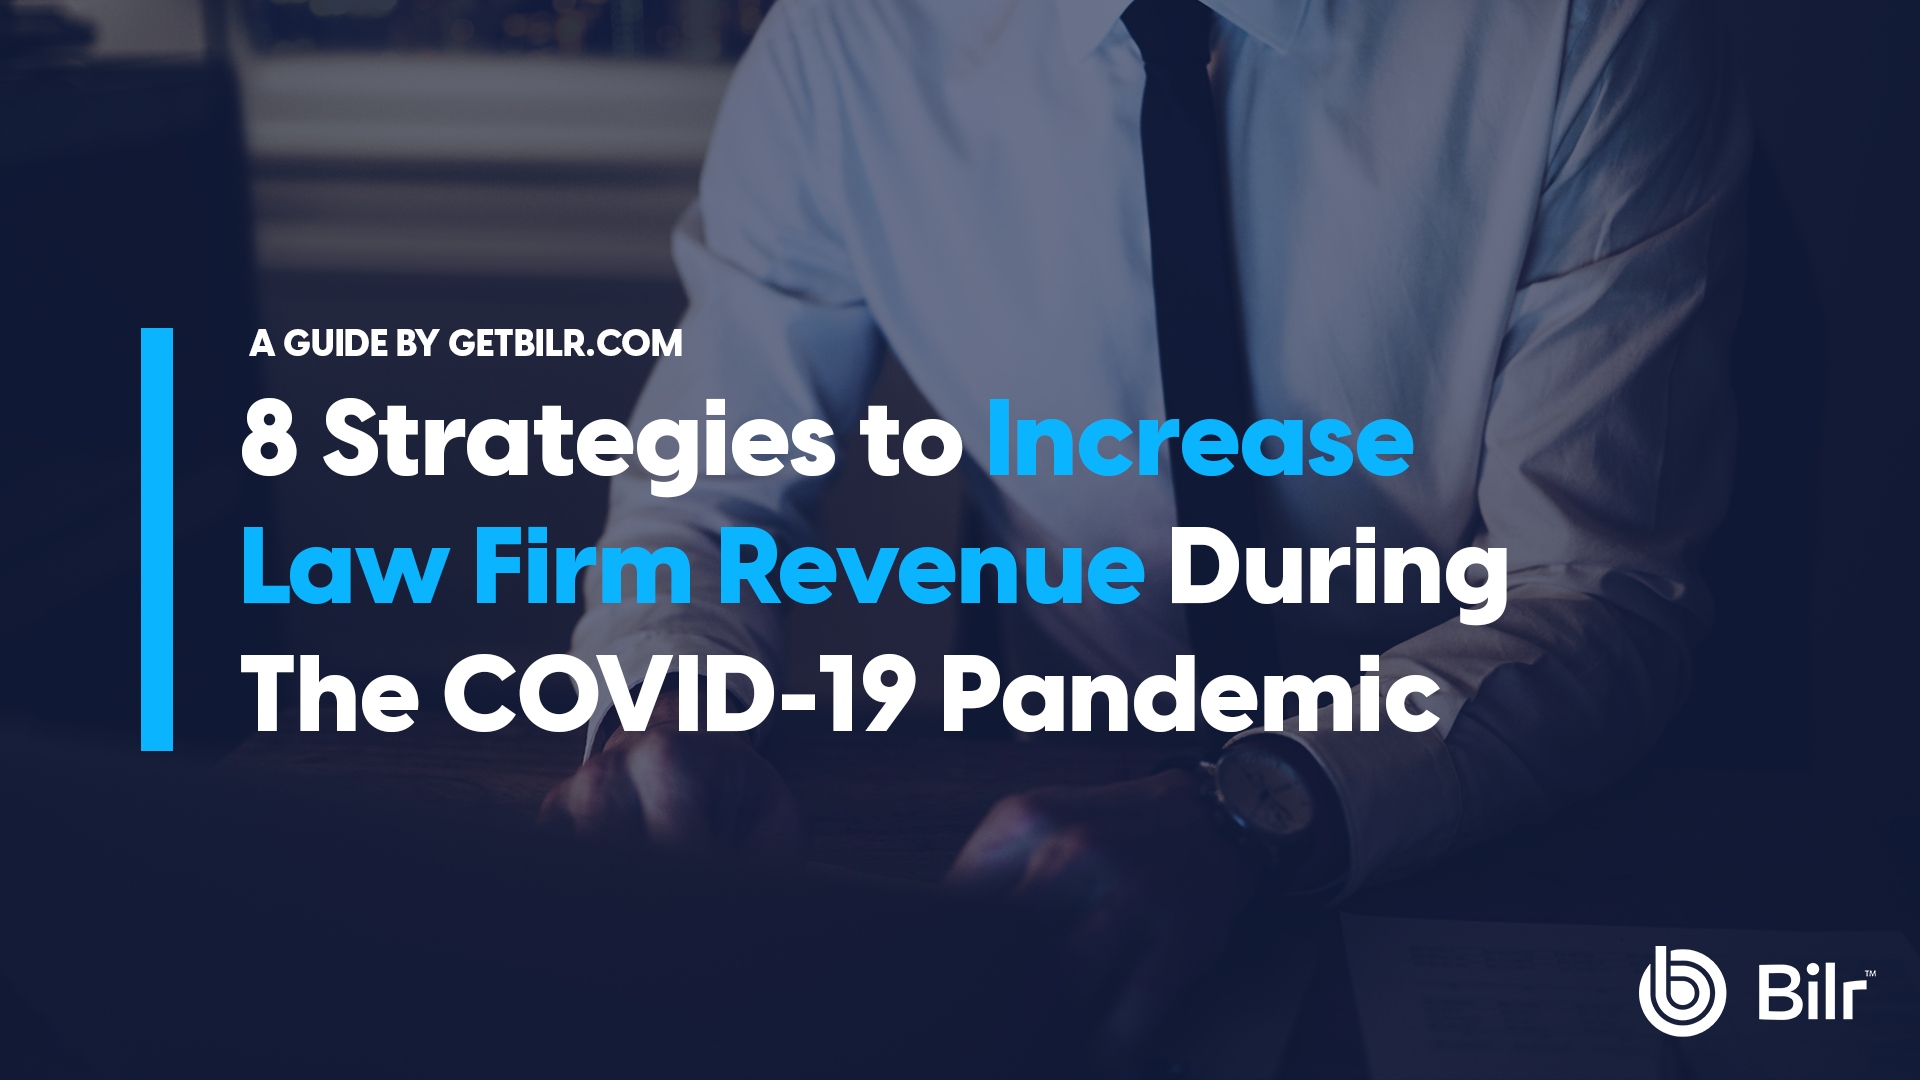 8 Strategies to Increase Law Firm Revenue During COVID-19